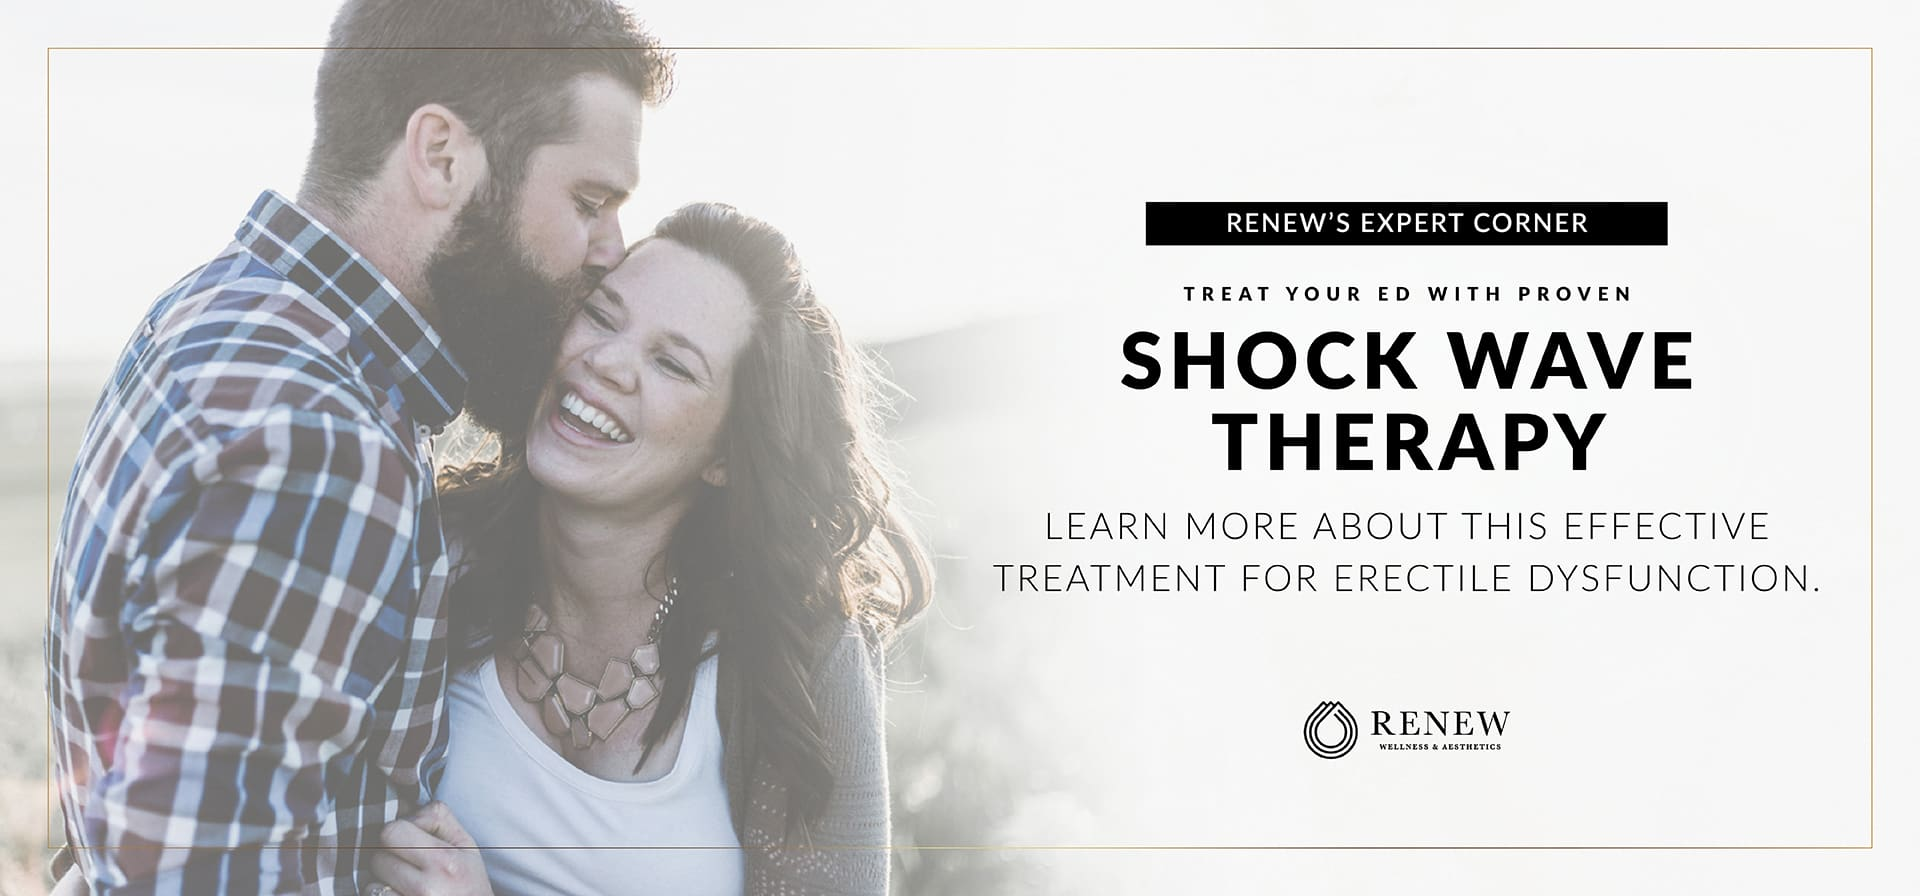 Shock Wave Therapy for ED Proven, Effective Treatment for Erectile Dysfunction – Available at Renew